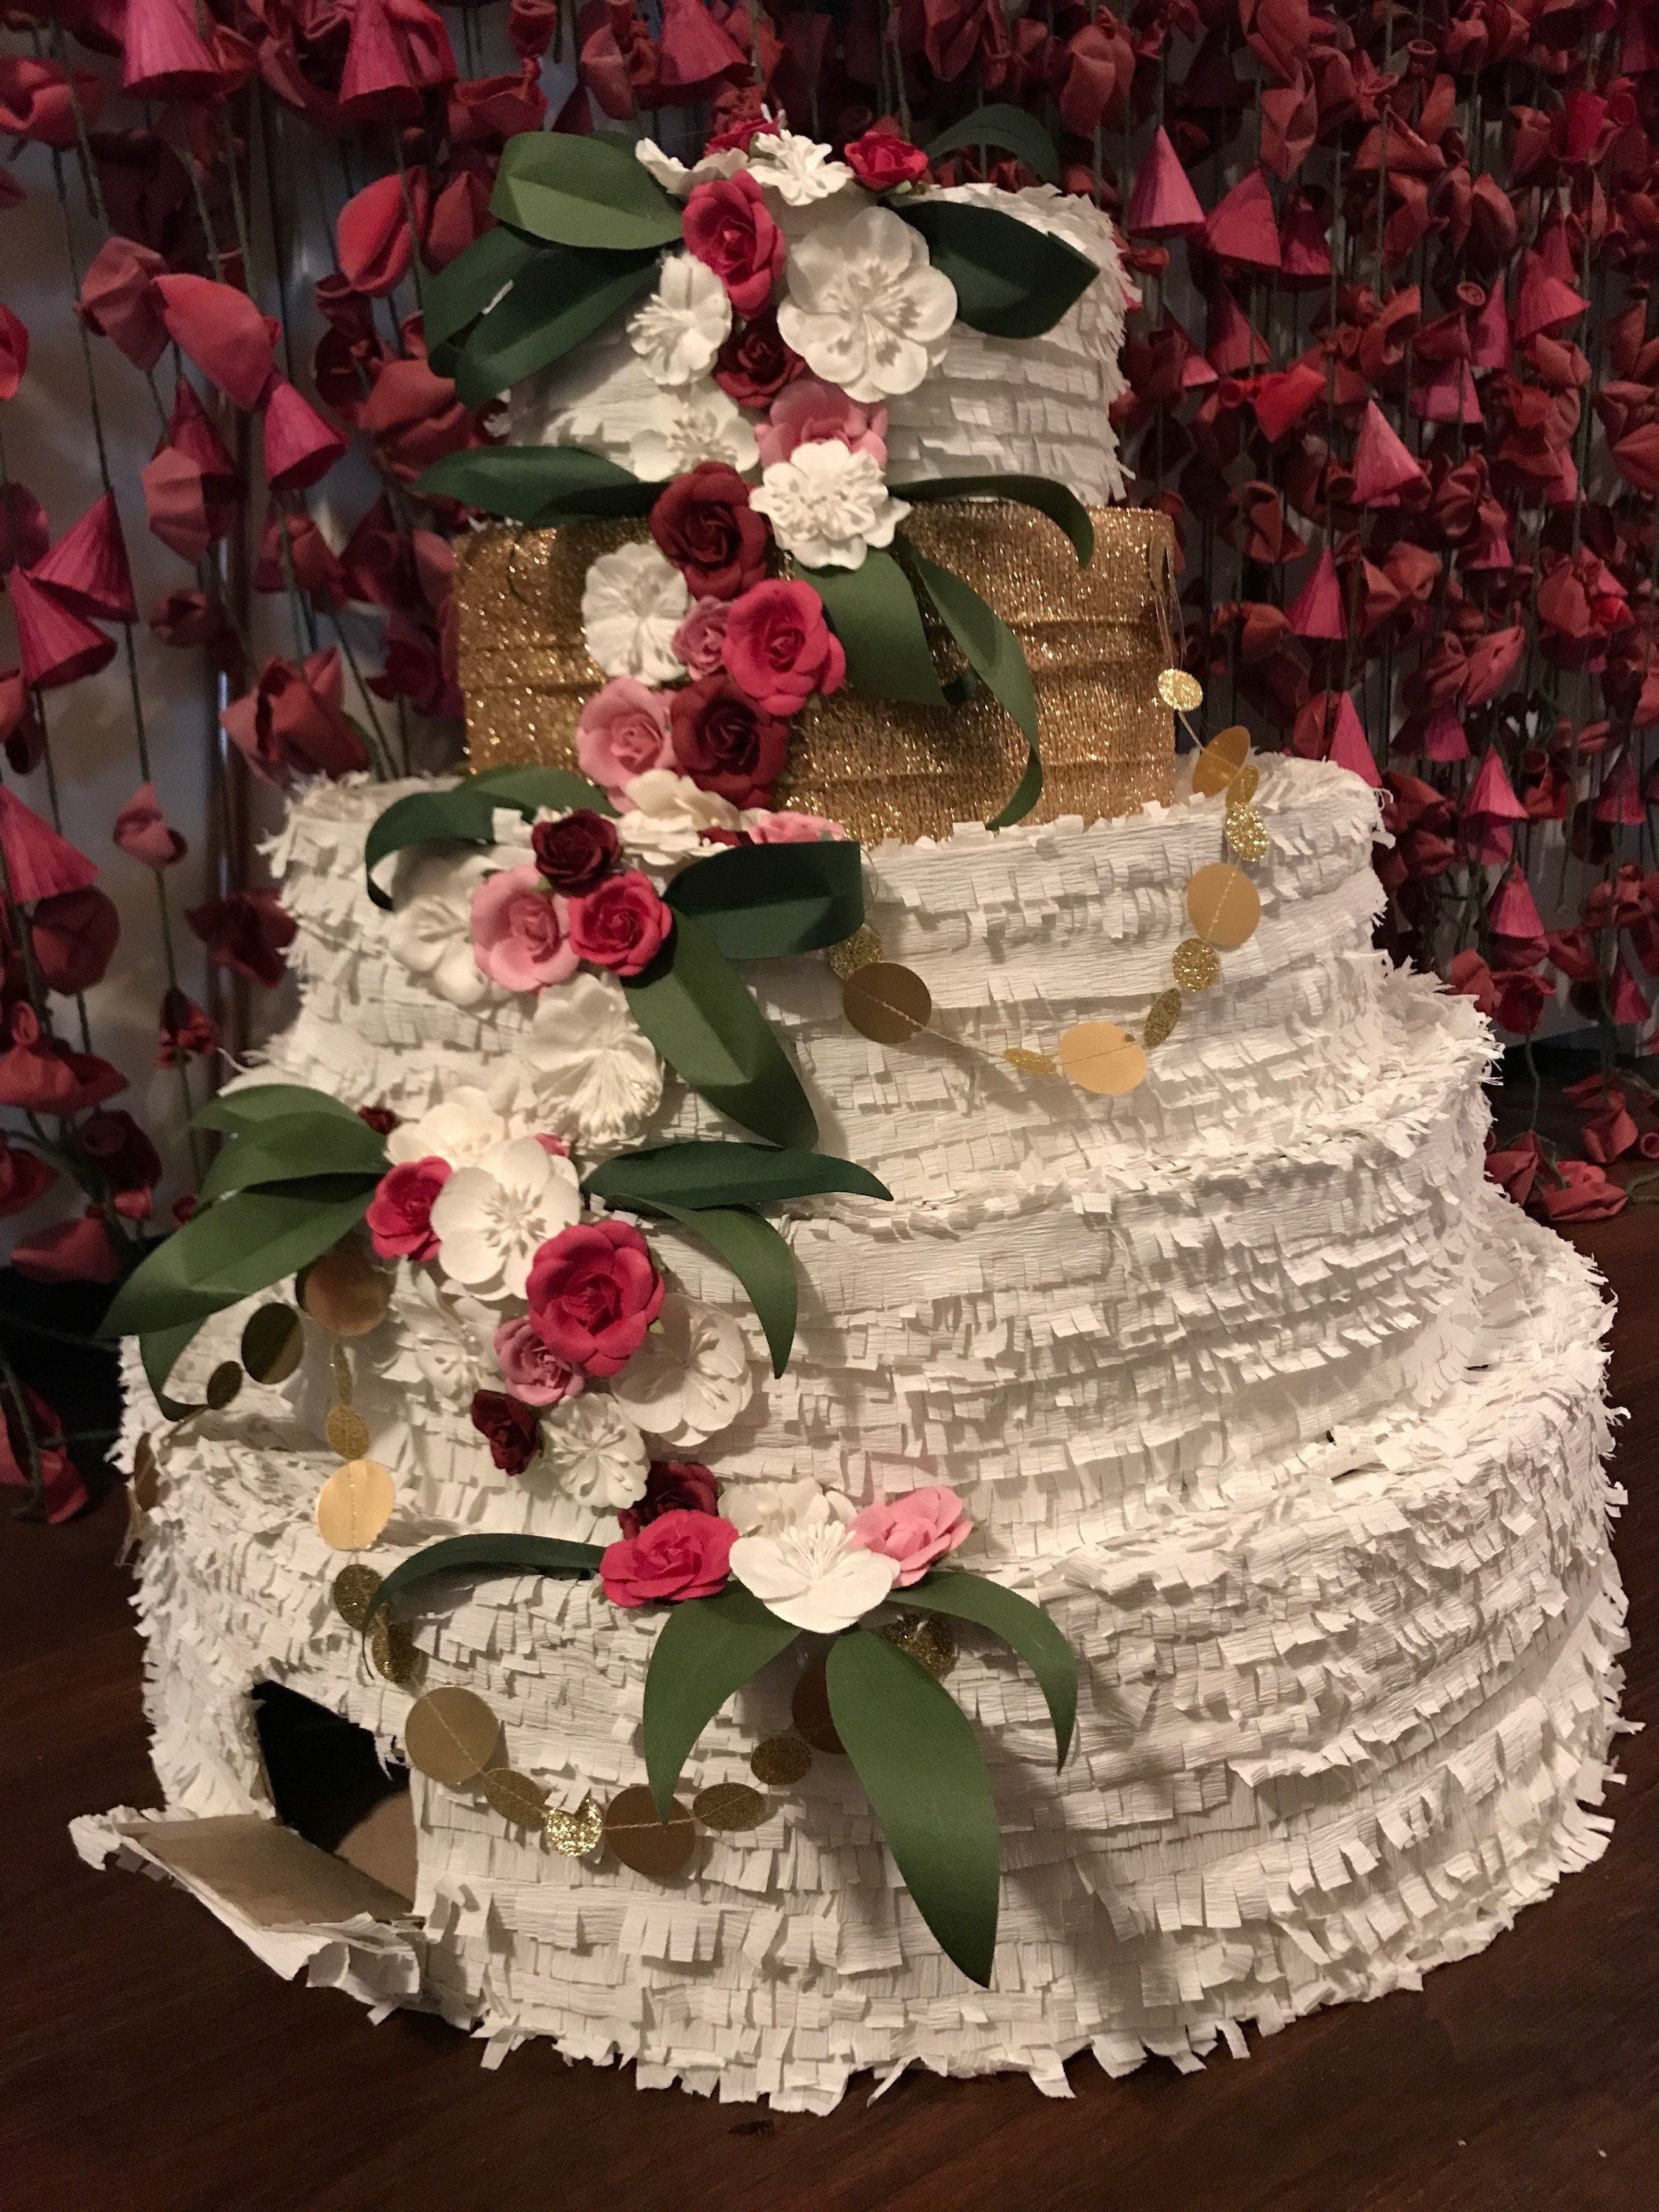 Excited To Share The Latest Addition To My Etsy Shop Wedding Cake Pinata White Wedding Pinata Cake Pinata Wedding Pinata Cool Wedding Cakes Wedding Cakes